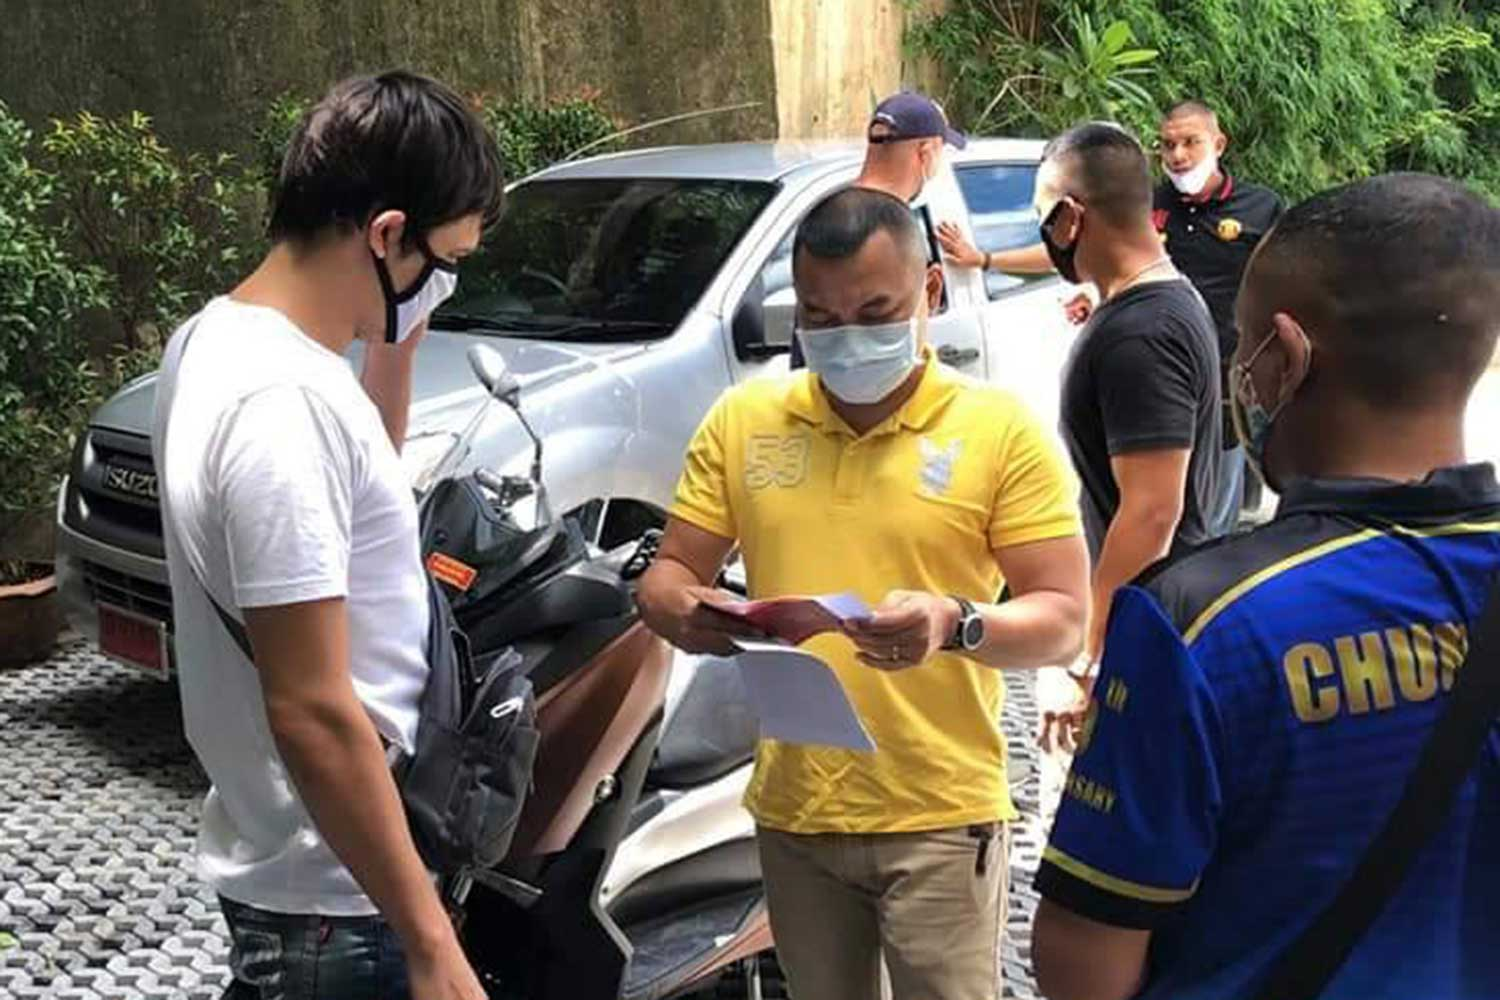 Leonid Iuraovskii, 35, white T-shirt, is arrested in Patong, Phuket, on Wednesday on charges of embezzlement and falsifying documents in the fraudulent sale of tour packages to his compatriots. (Photo supplied)